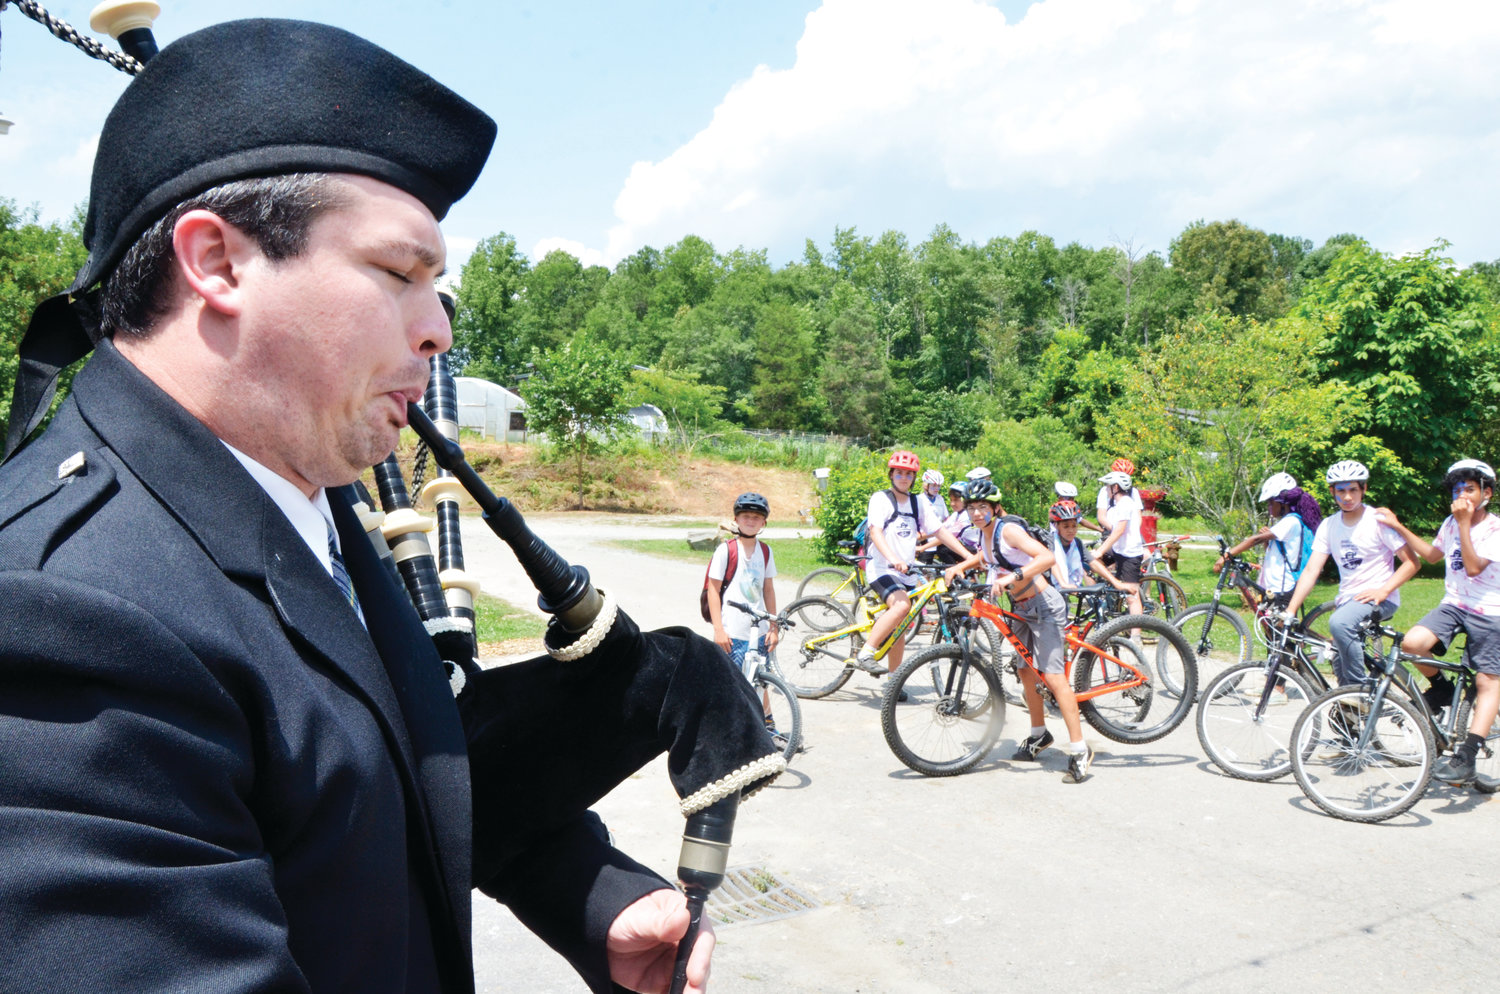 A bagpiper came out to send the campers on their way with some Scottish tunes Thursday. The group left the Lorax Lane location in Pittsboro and traveled down U.S. 64 to Jordan Lake.